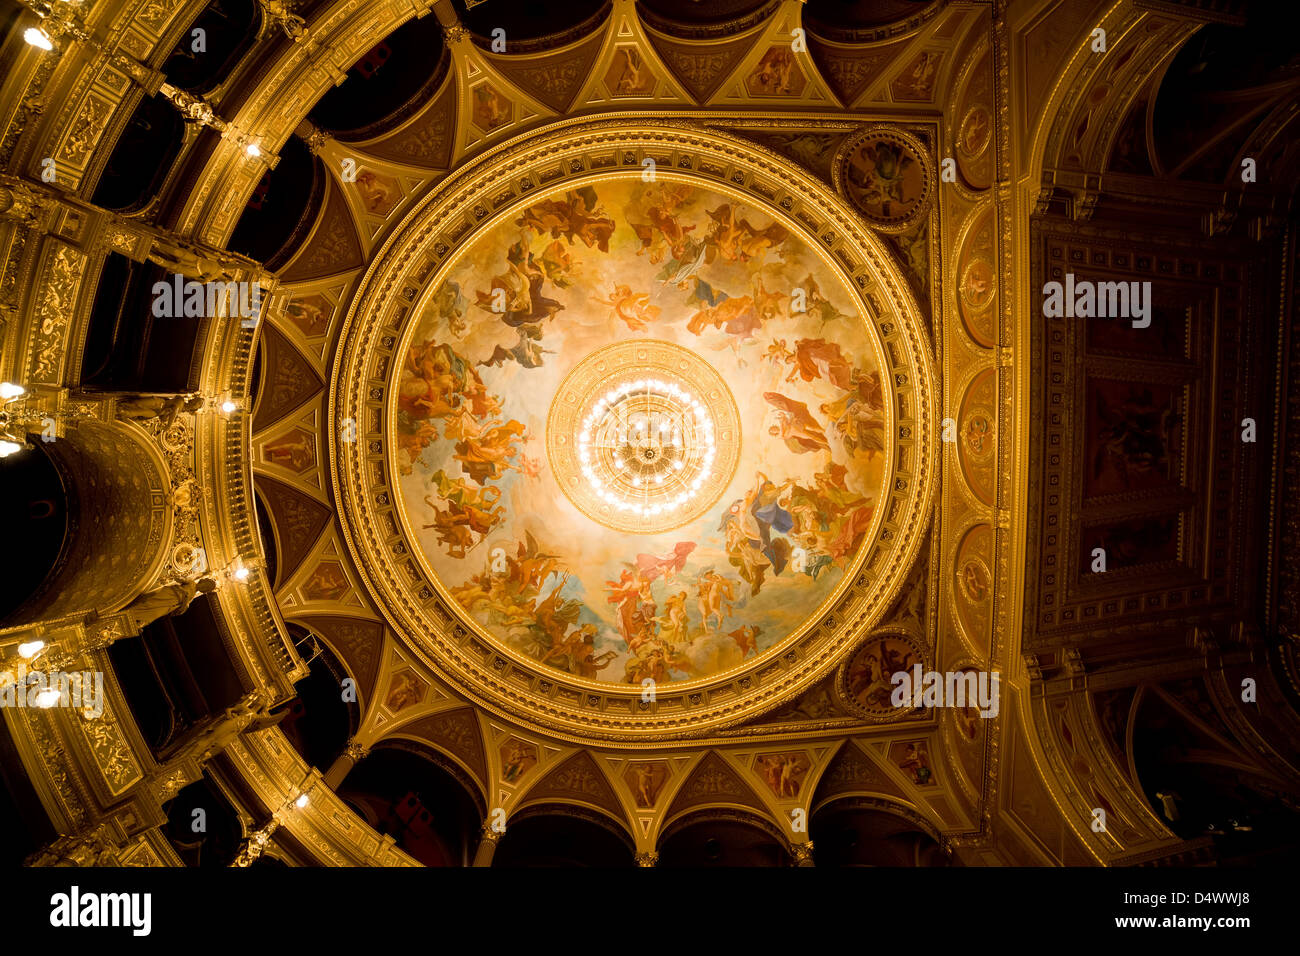 Budapest Opera House interior ceiling with frescos by Karoly Lotz depicting Olympus and the Greek gods, Budapest, - Stock Image